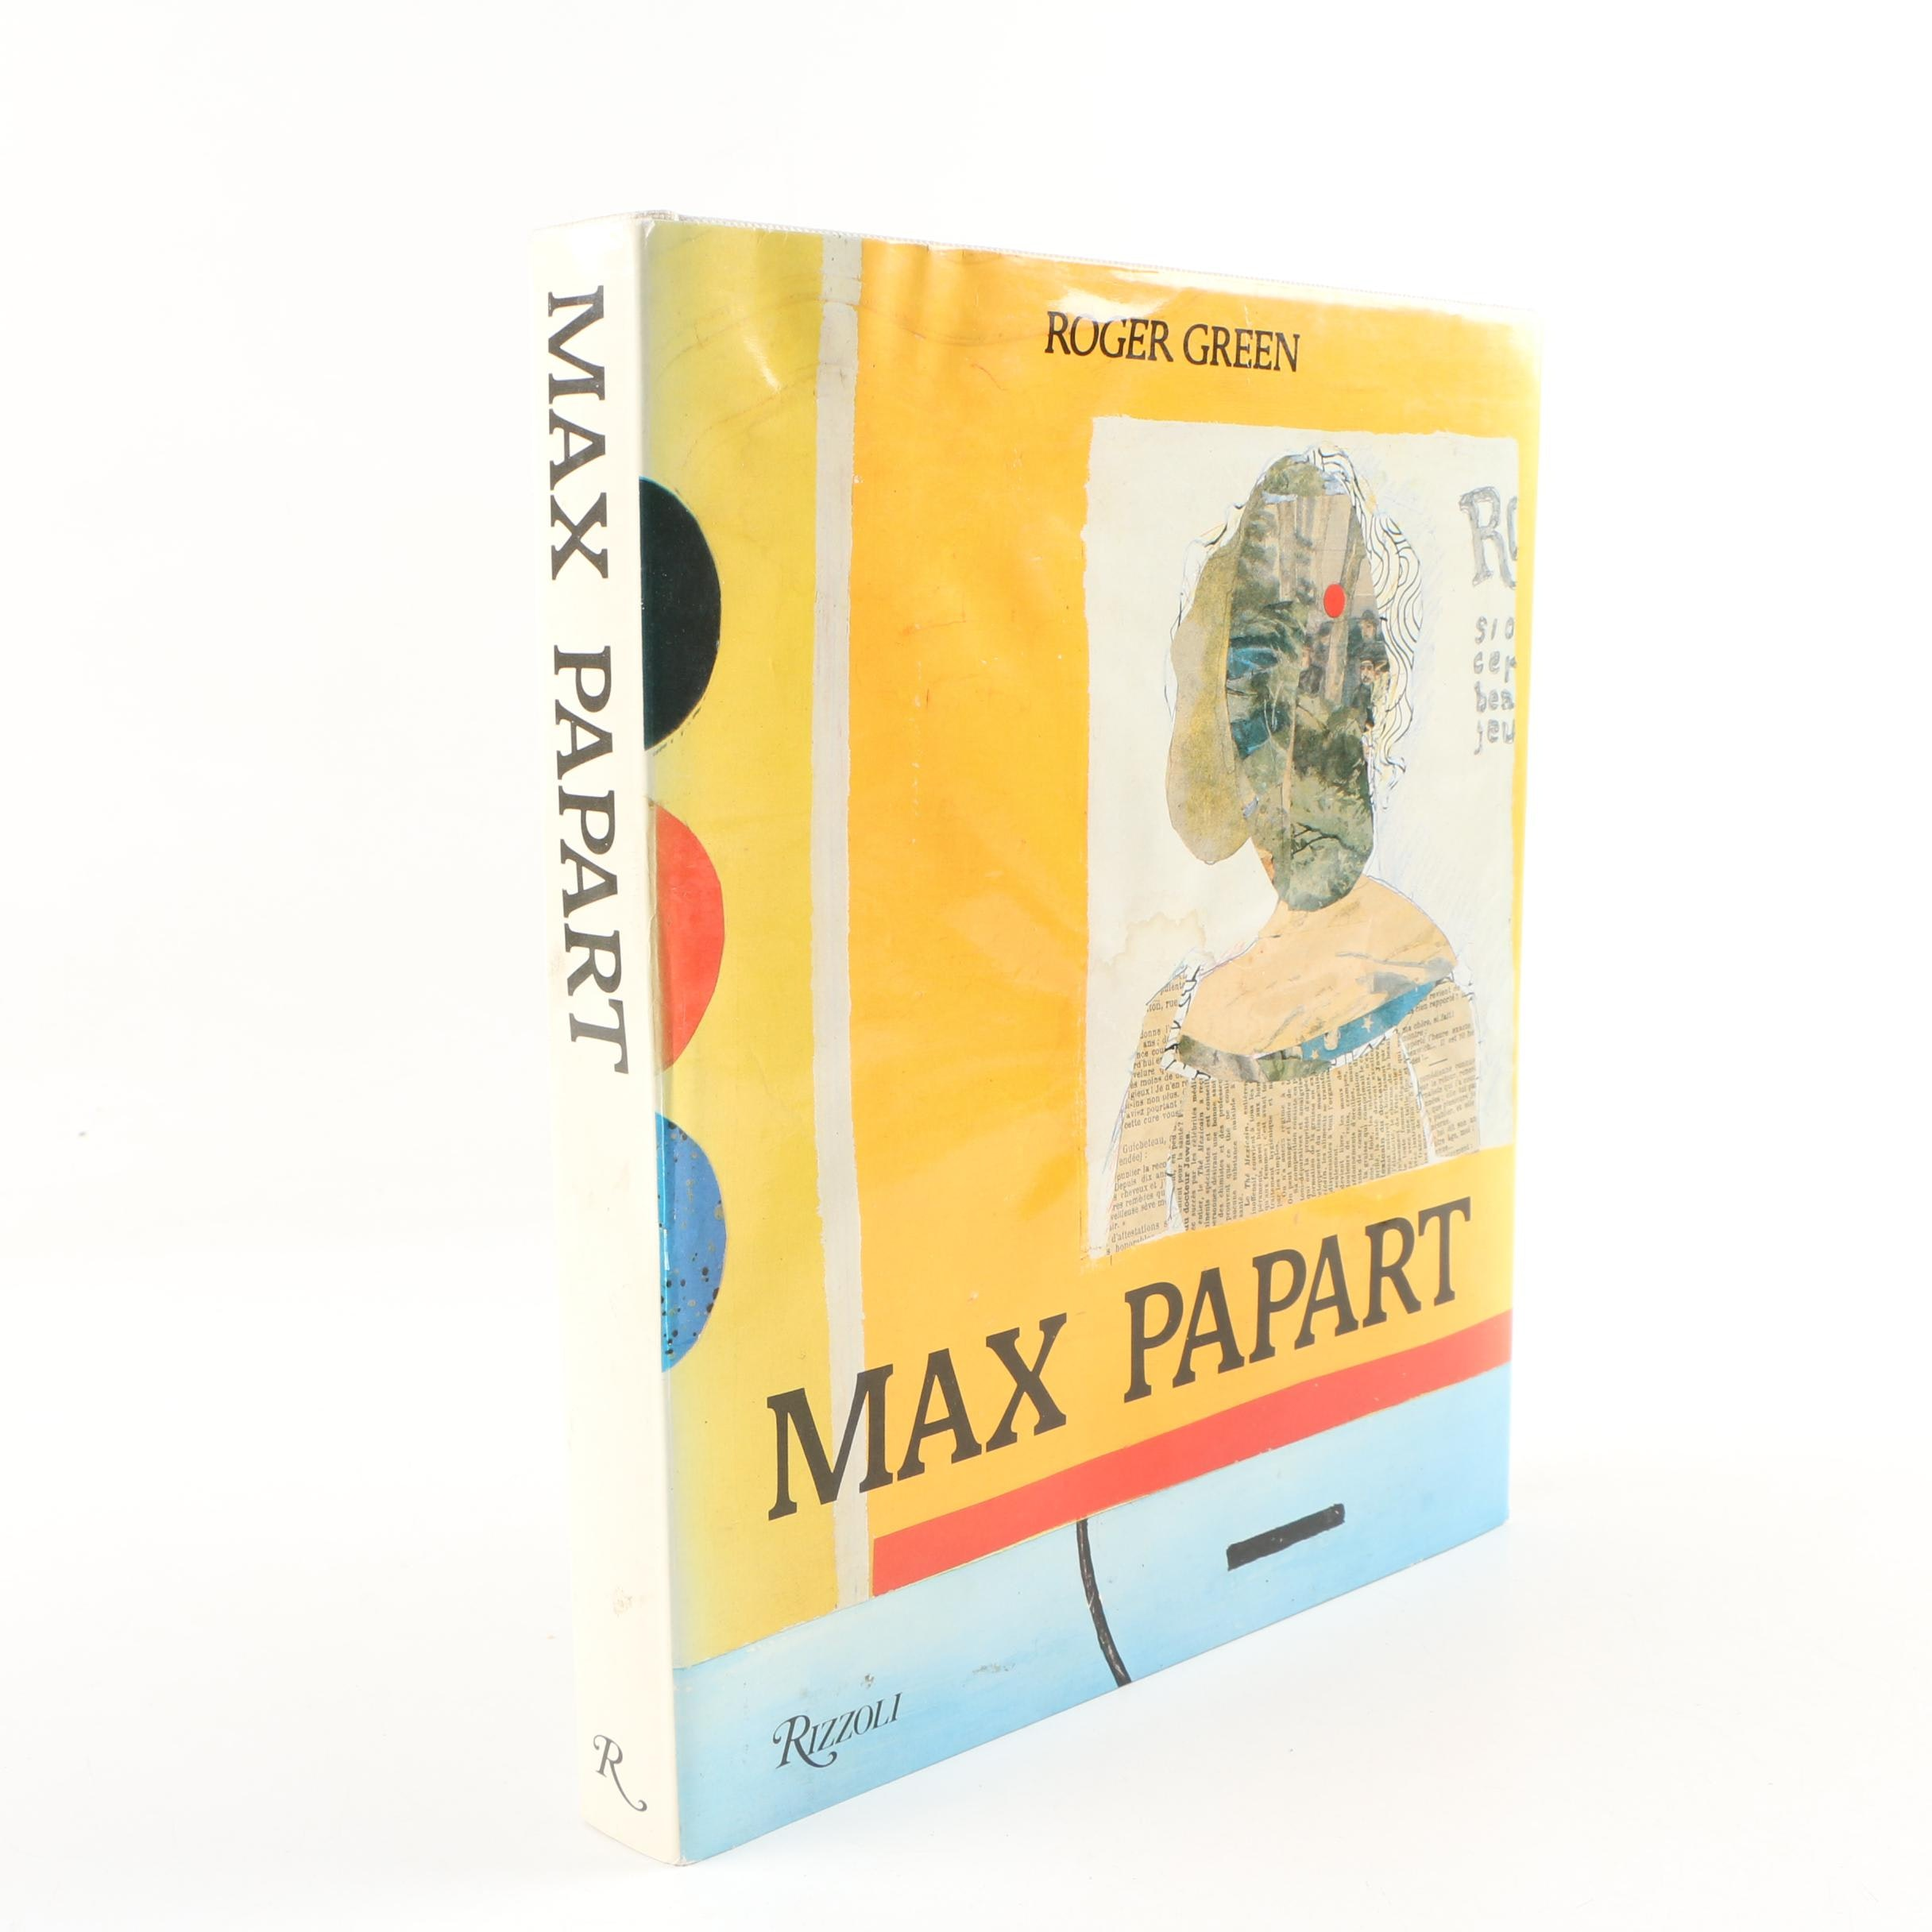 "Max Papart Signed 1984 ""Max Papart"" by Roger Green with Lithograph"